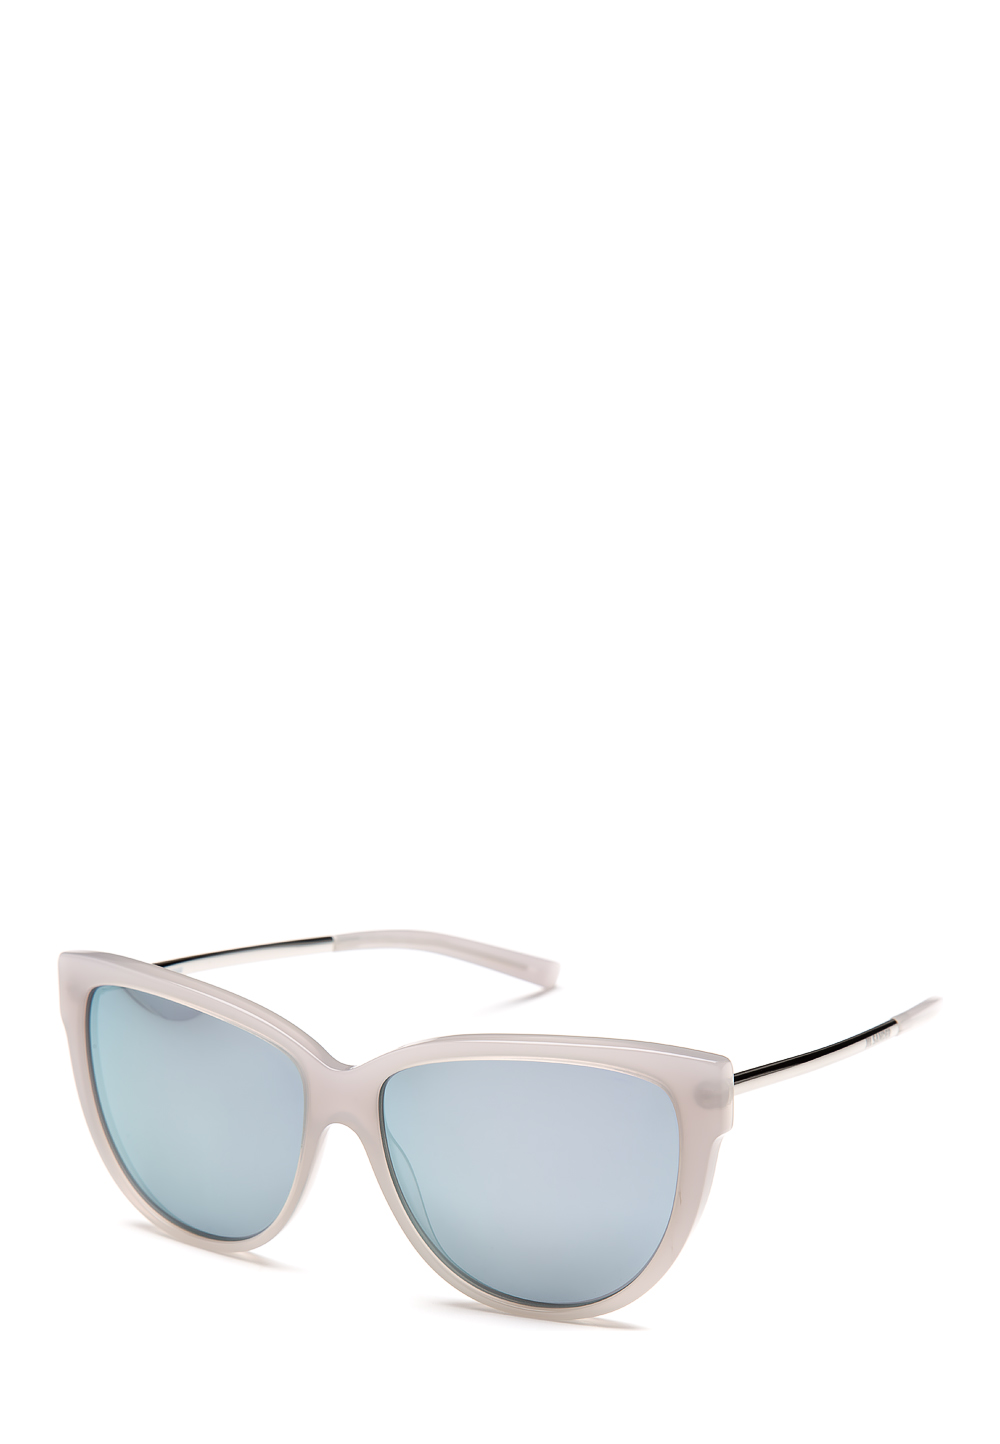 JIL Sander SUN Sonnenbrille J3008, UV 400, light grey grau